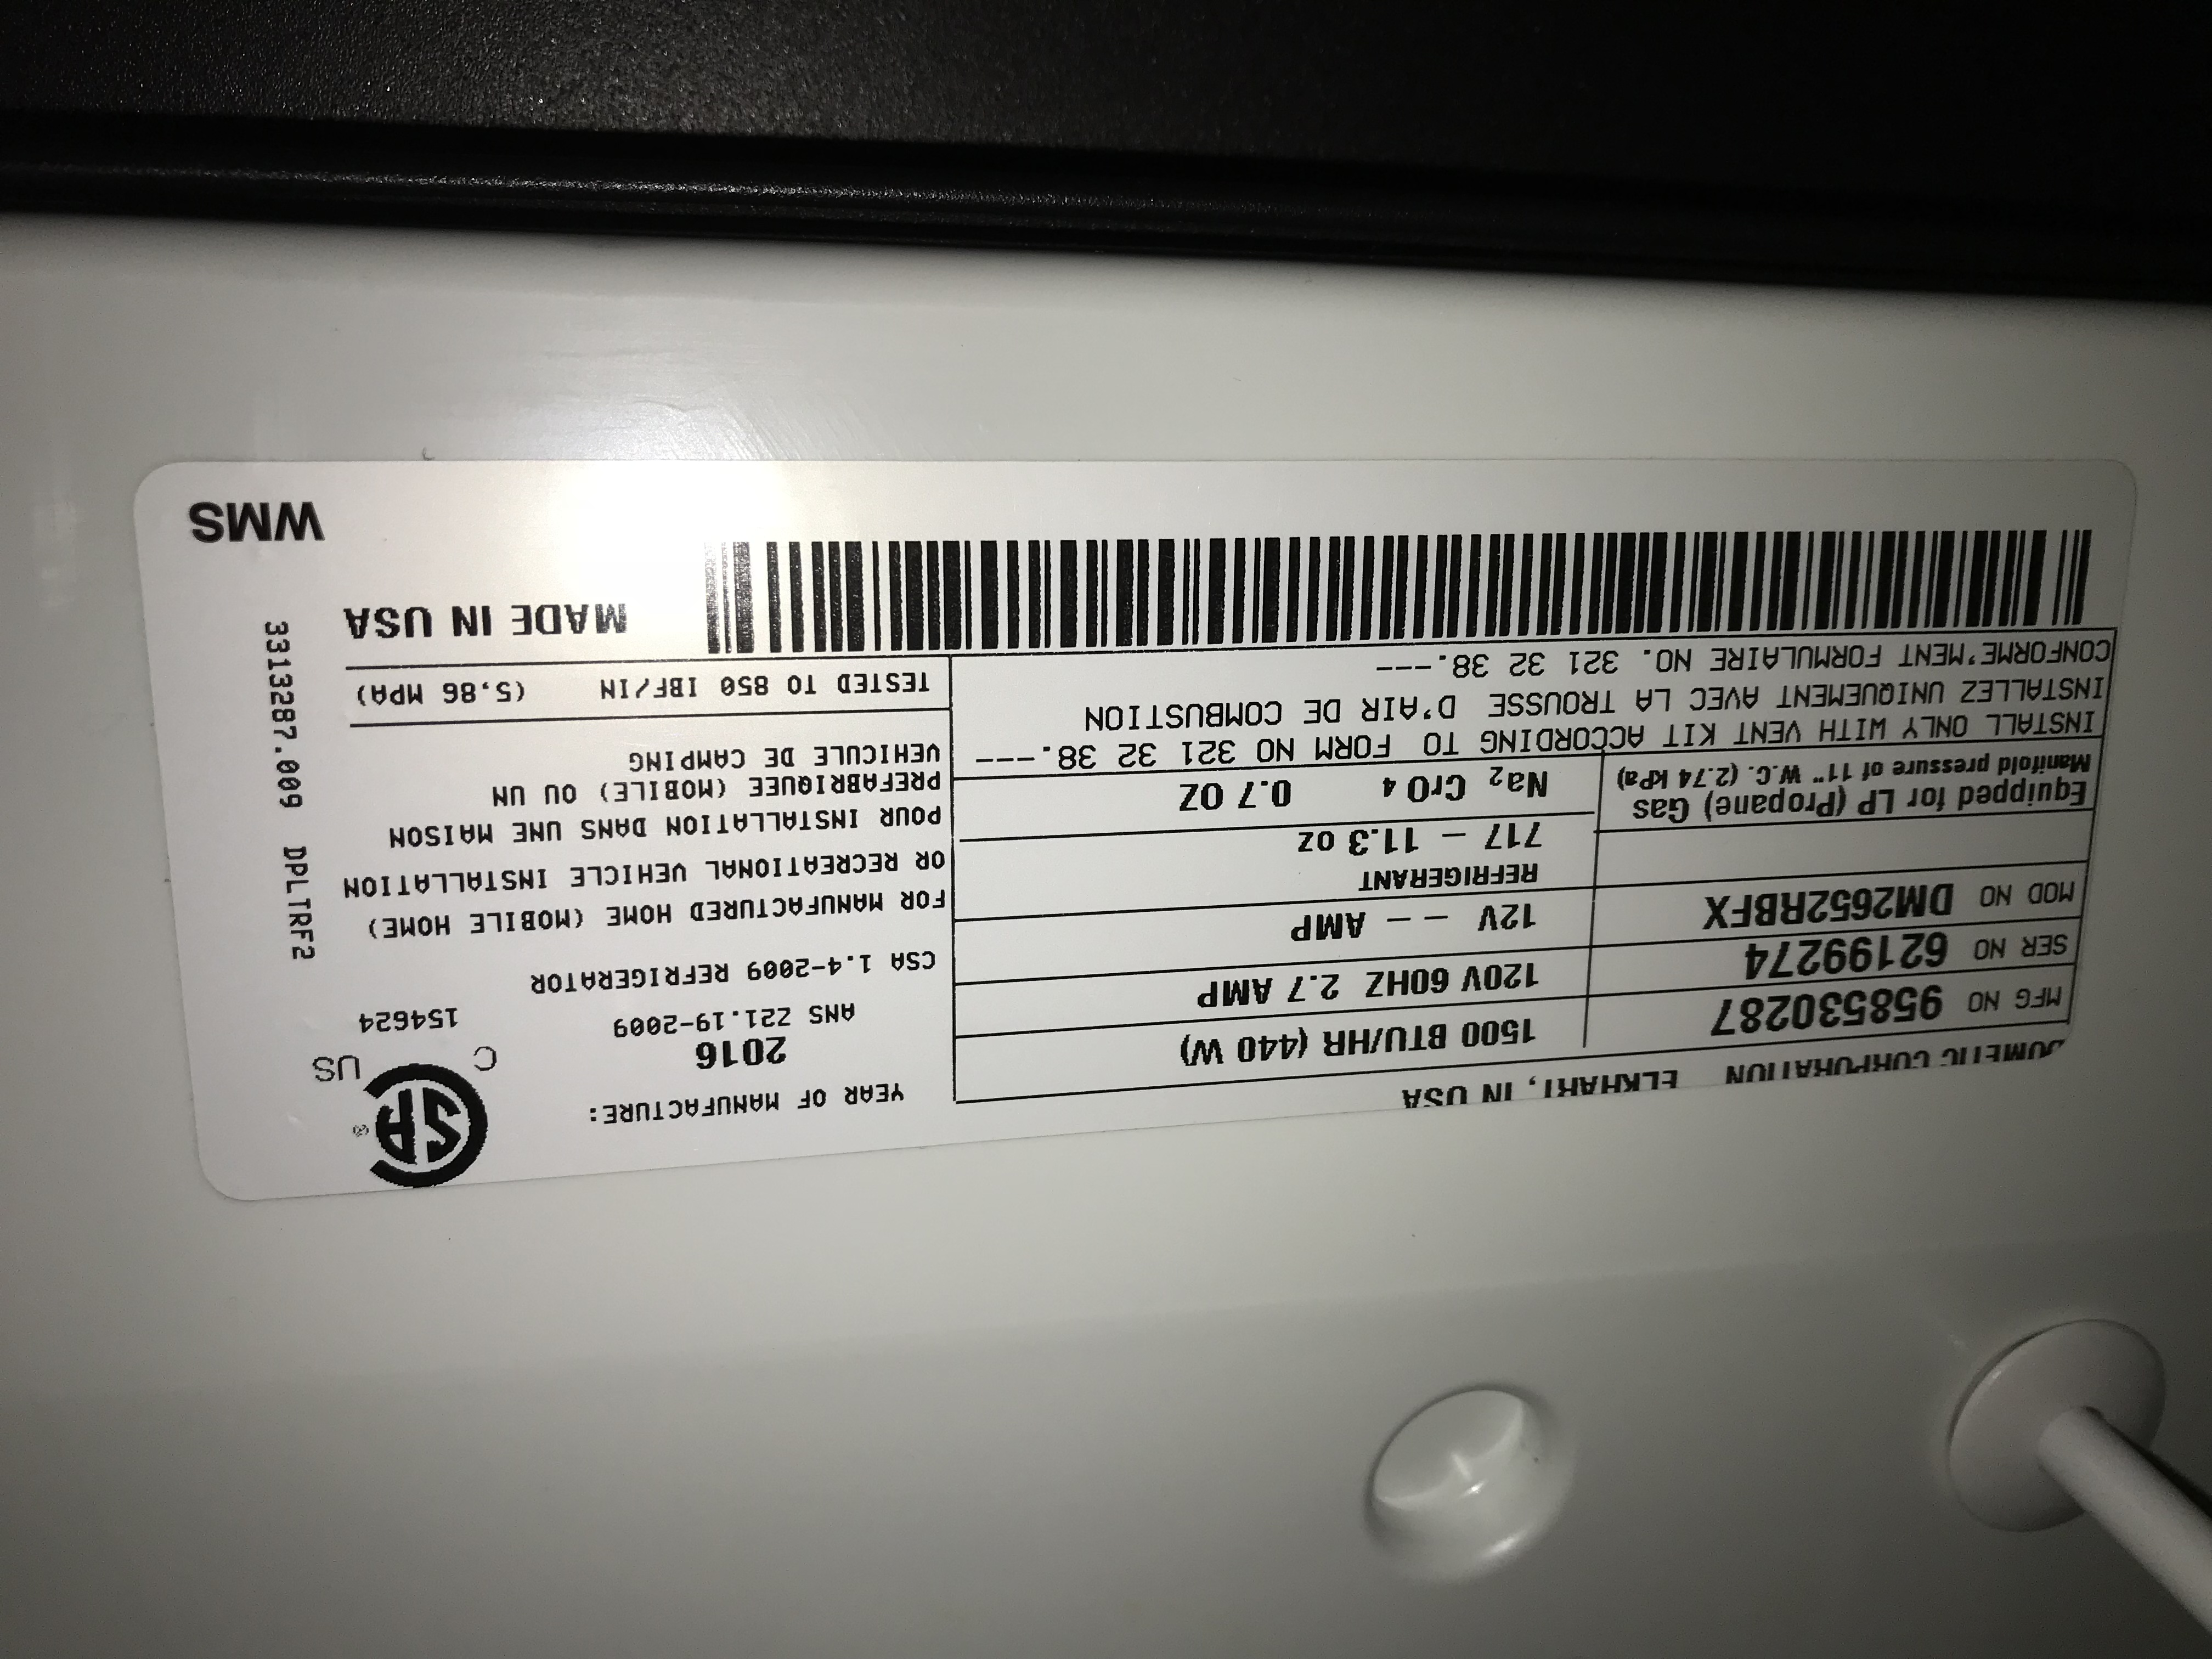 Dometic 2351 I believe, no 12v  Check light comes on and